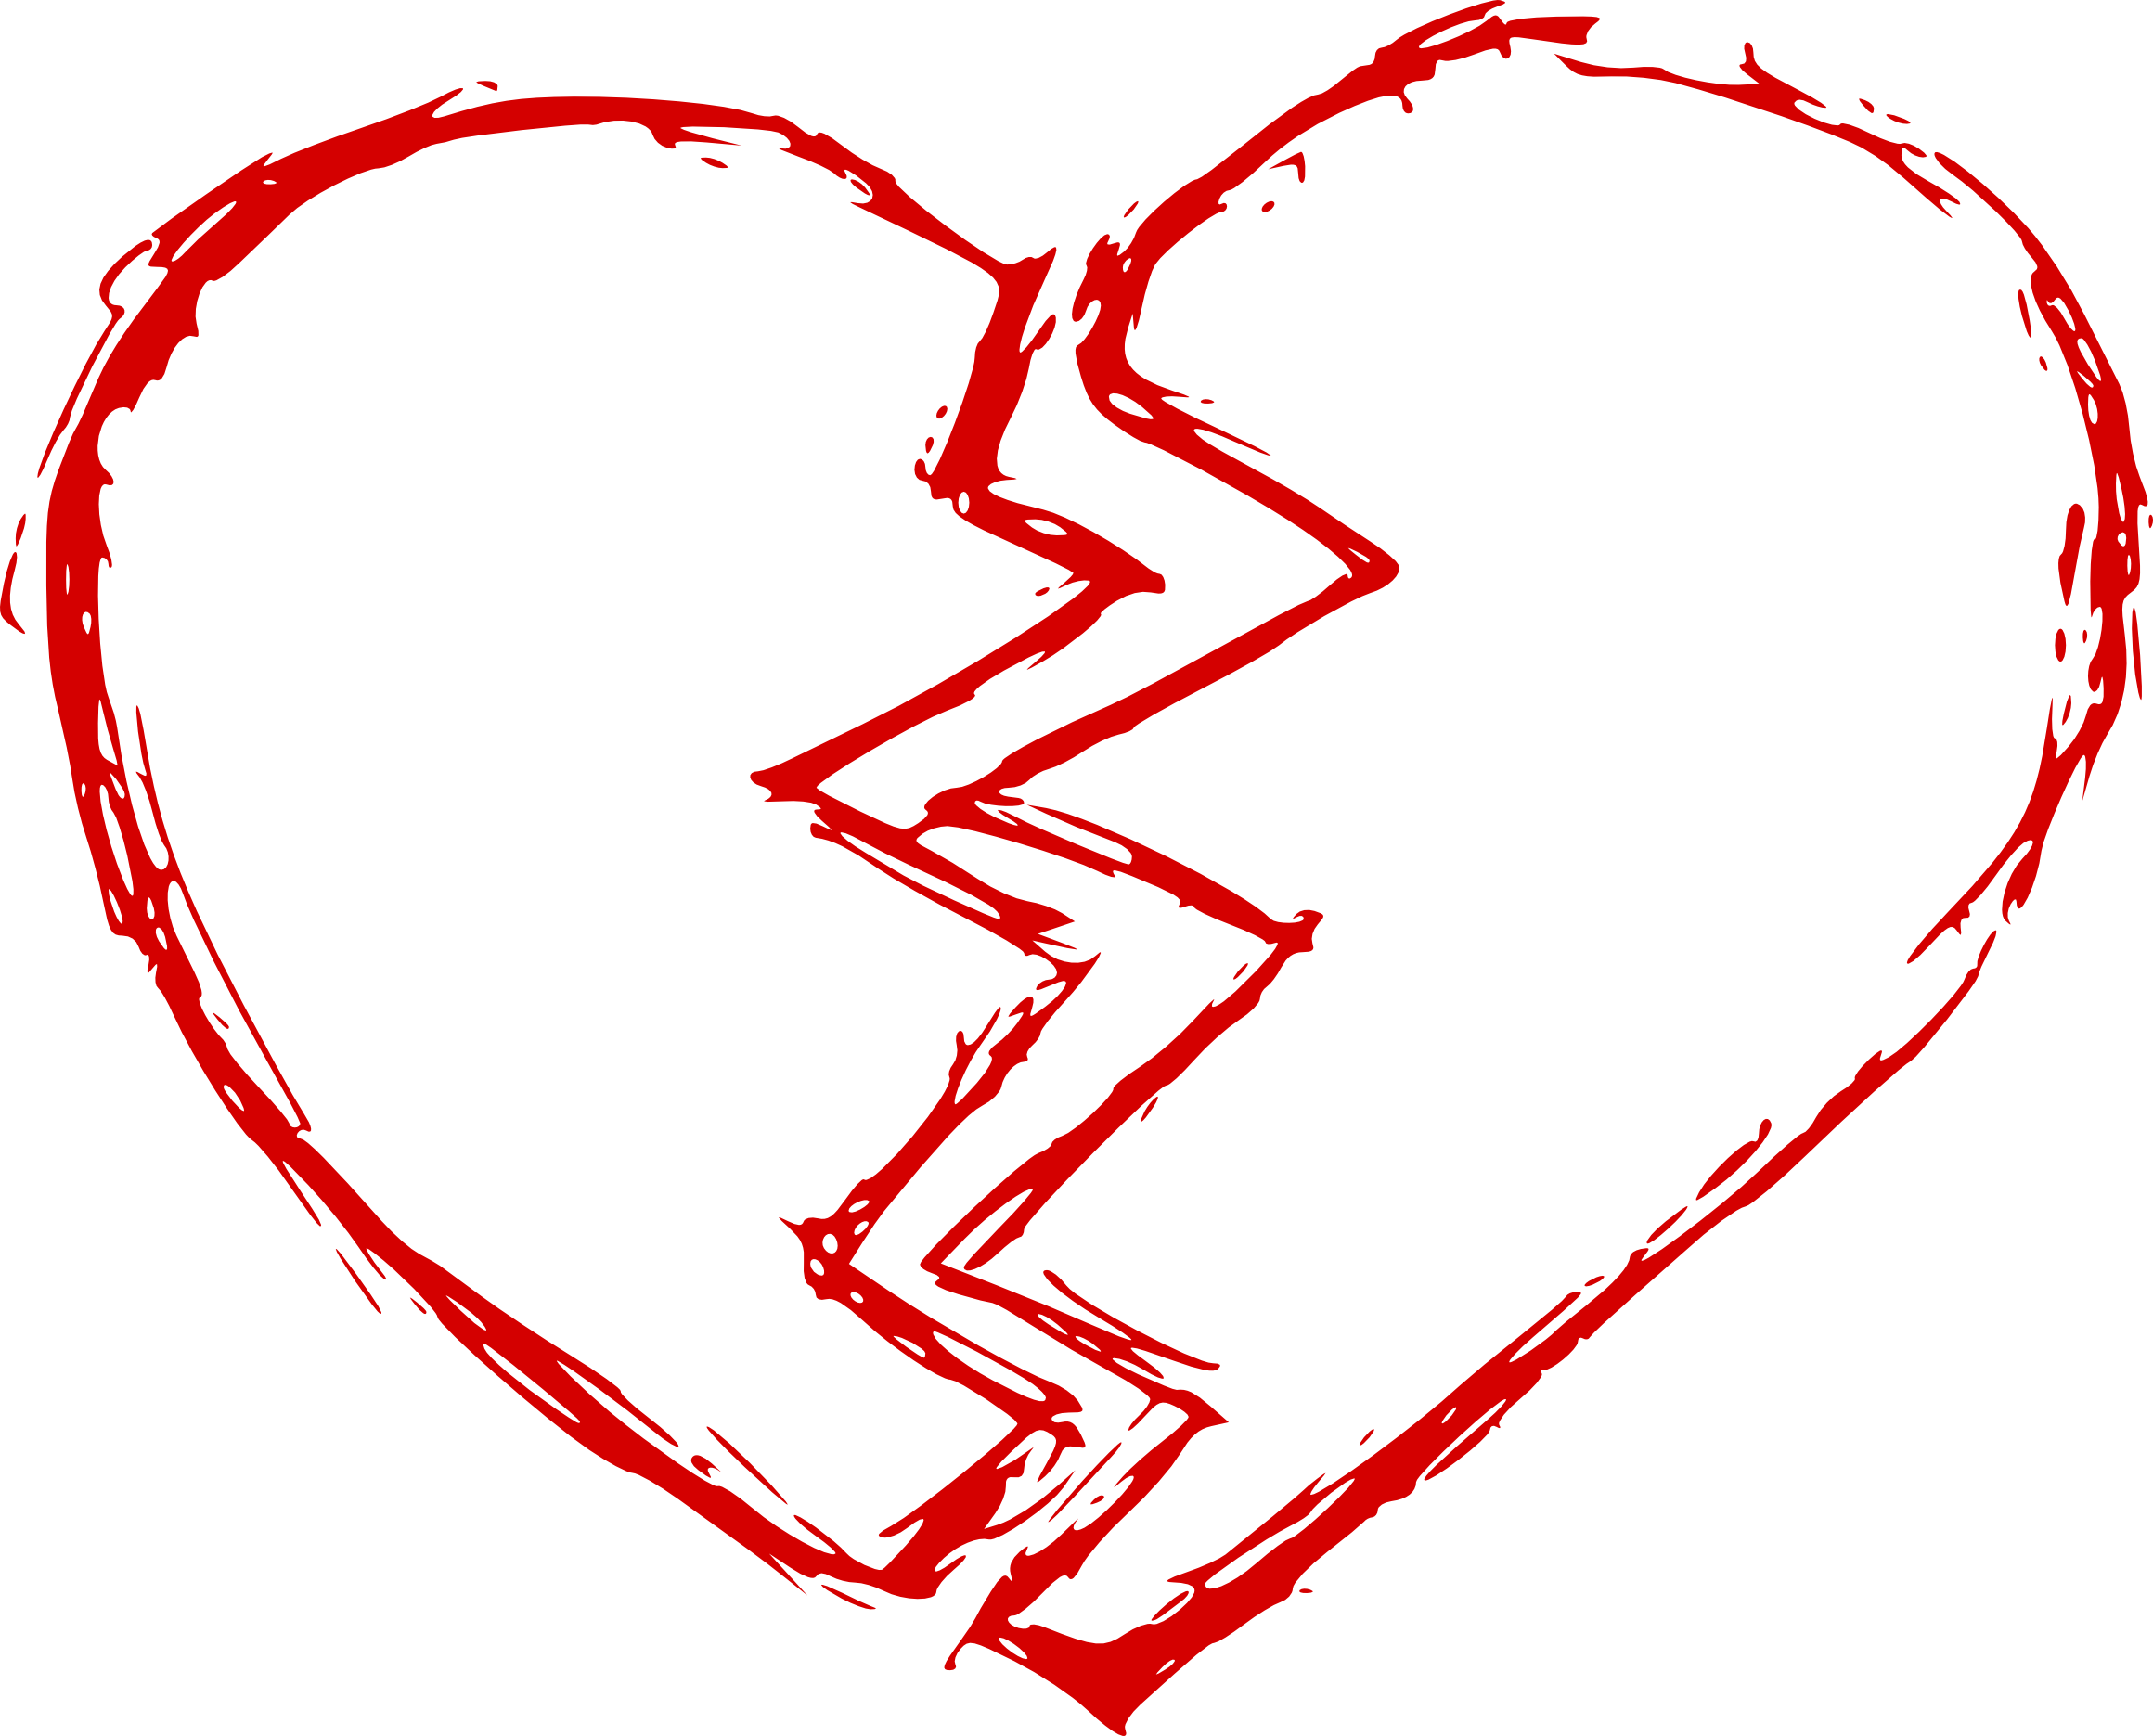 Heartbeat Png Transparent Black: Broken Heart (PNG Transparent)